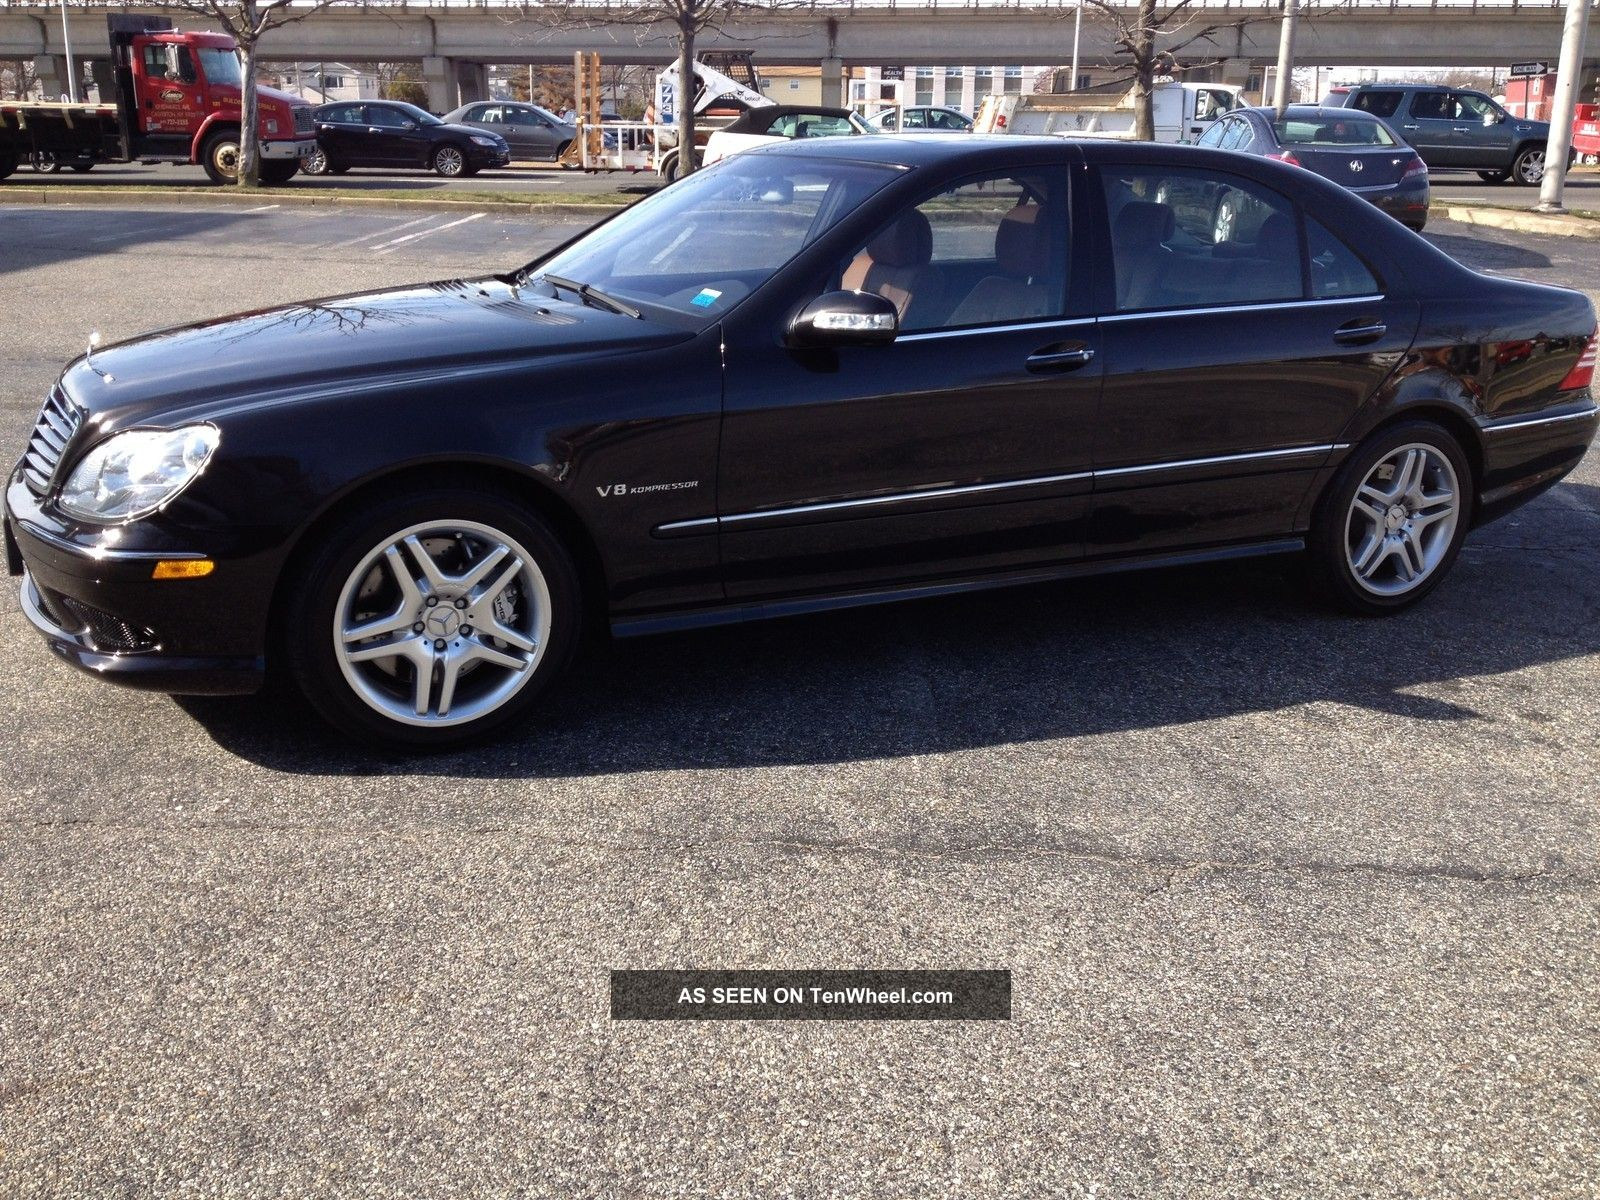 2003 mercedes benz s55 amg kompressor sedan 4 door 5 5l for 2003 mercedes benz s55 amg